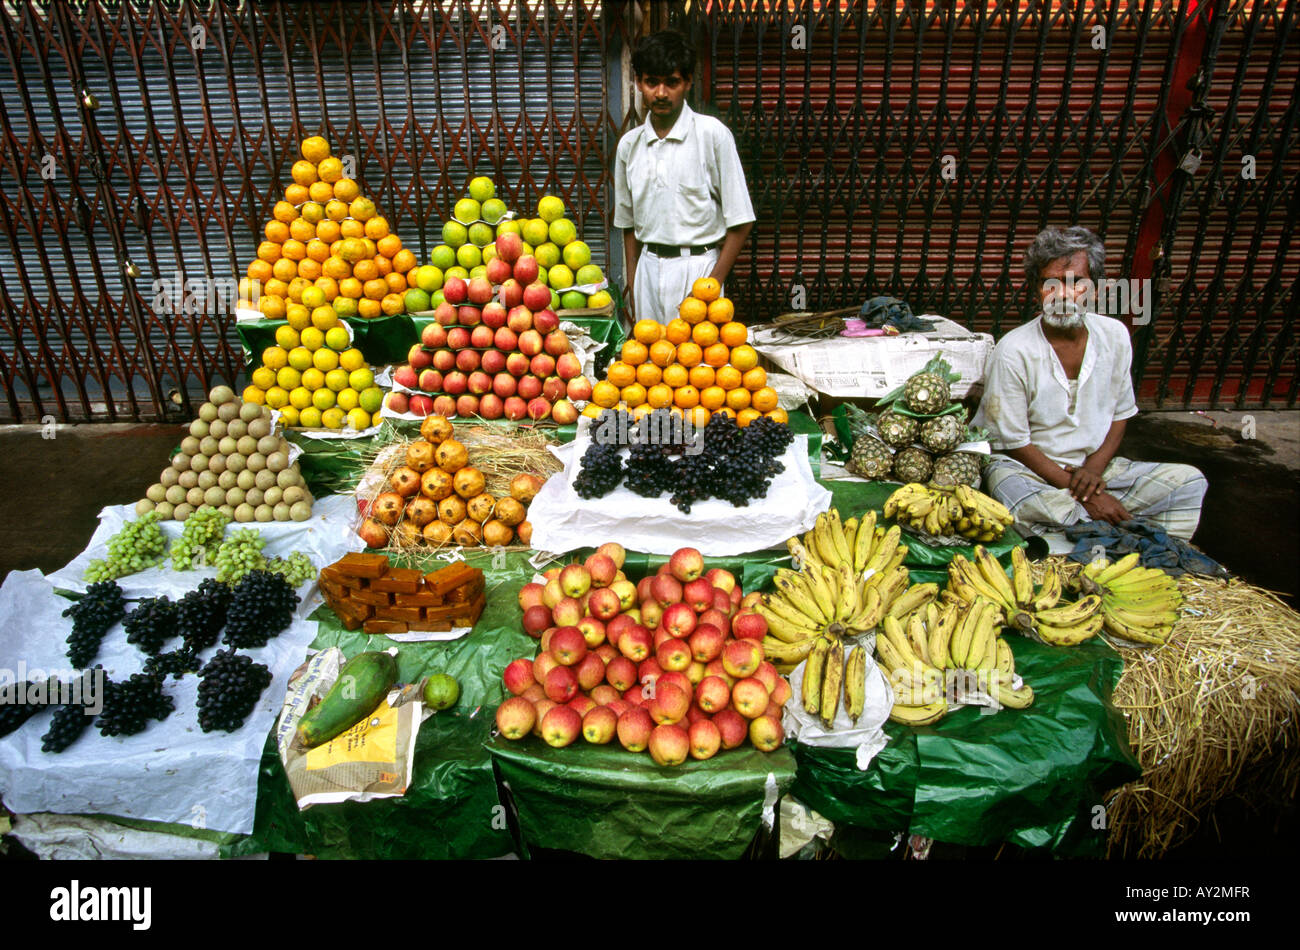 India West Bengal Calcutta men at fruit stall near New Market - Stock Image